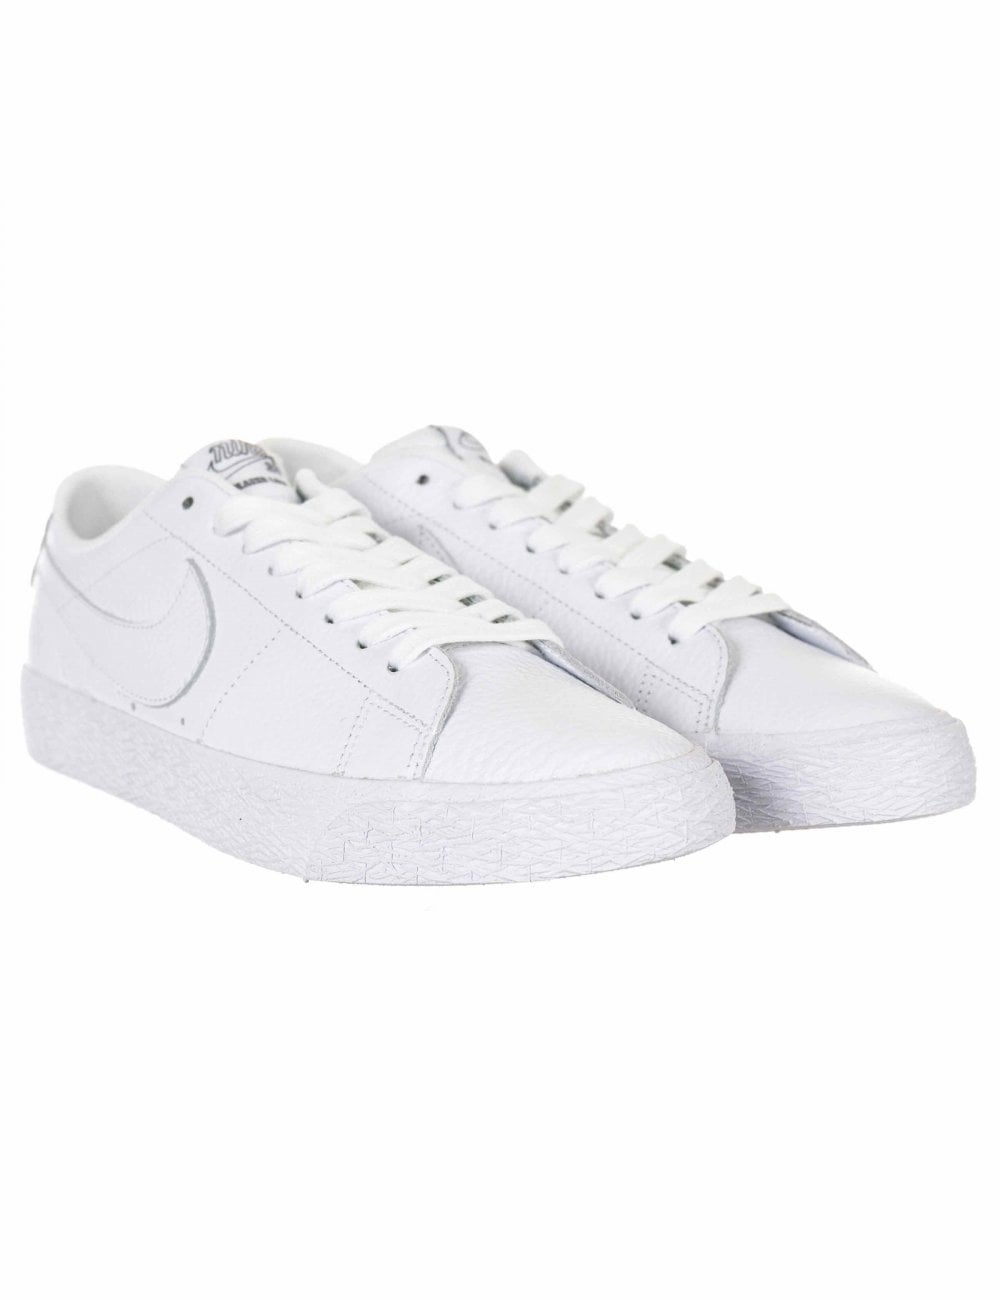 7b15556858b2 Nike SB Zoom Blazer Low NBA Trainers - White - Footwear from Fat ...